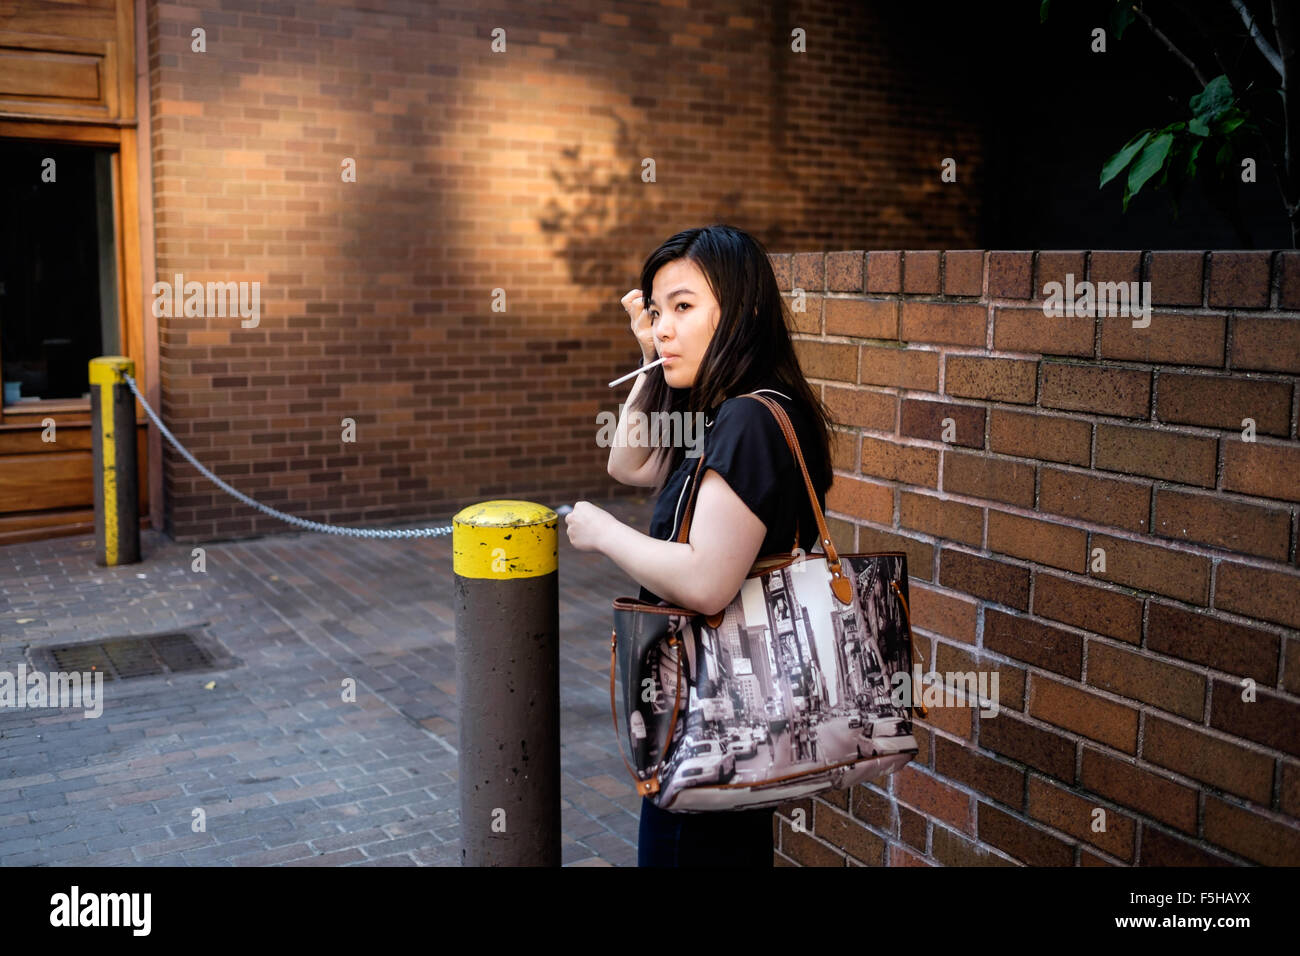 New York City, New York, USA.  August 23, 2015:  A woman stops to adjust her hair with an unlit cigarette in her - Stock Image